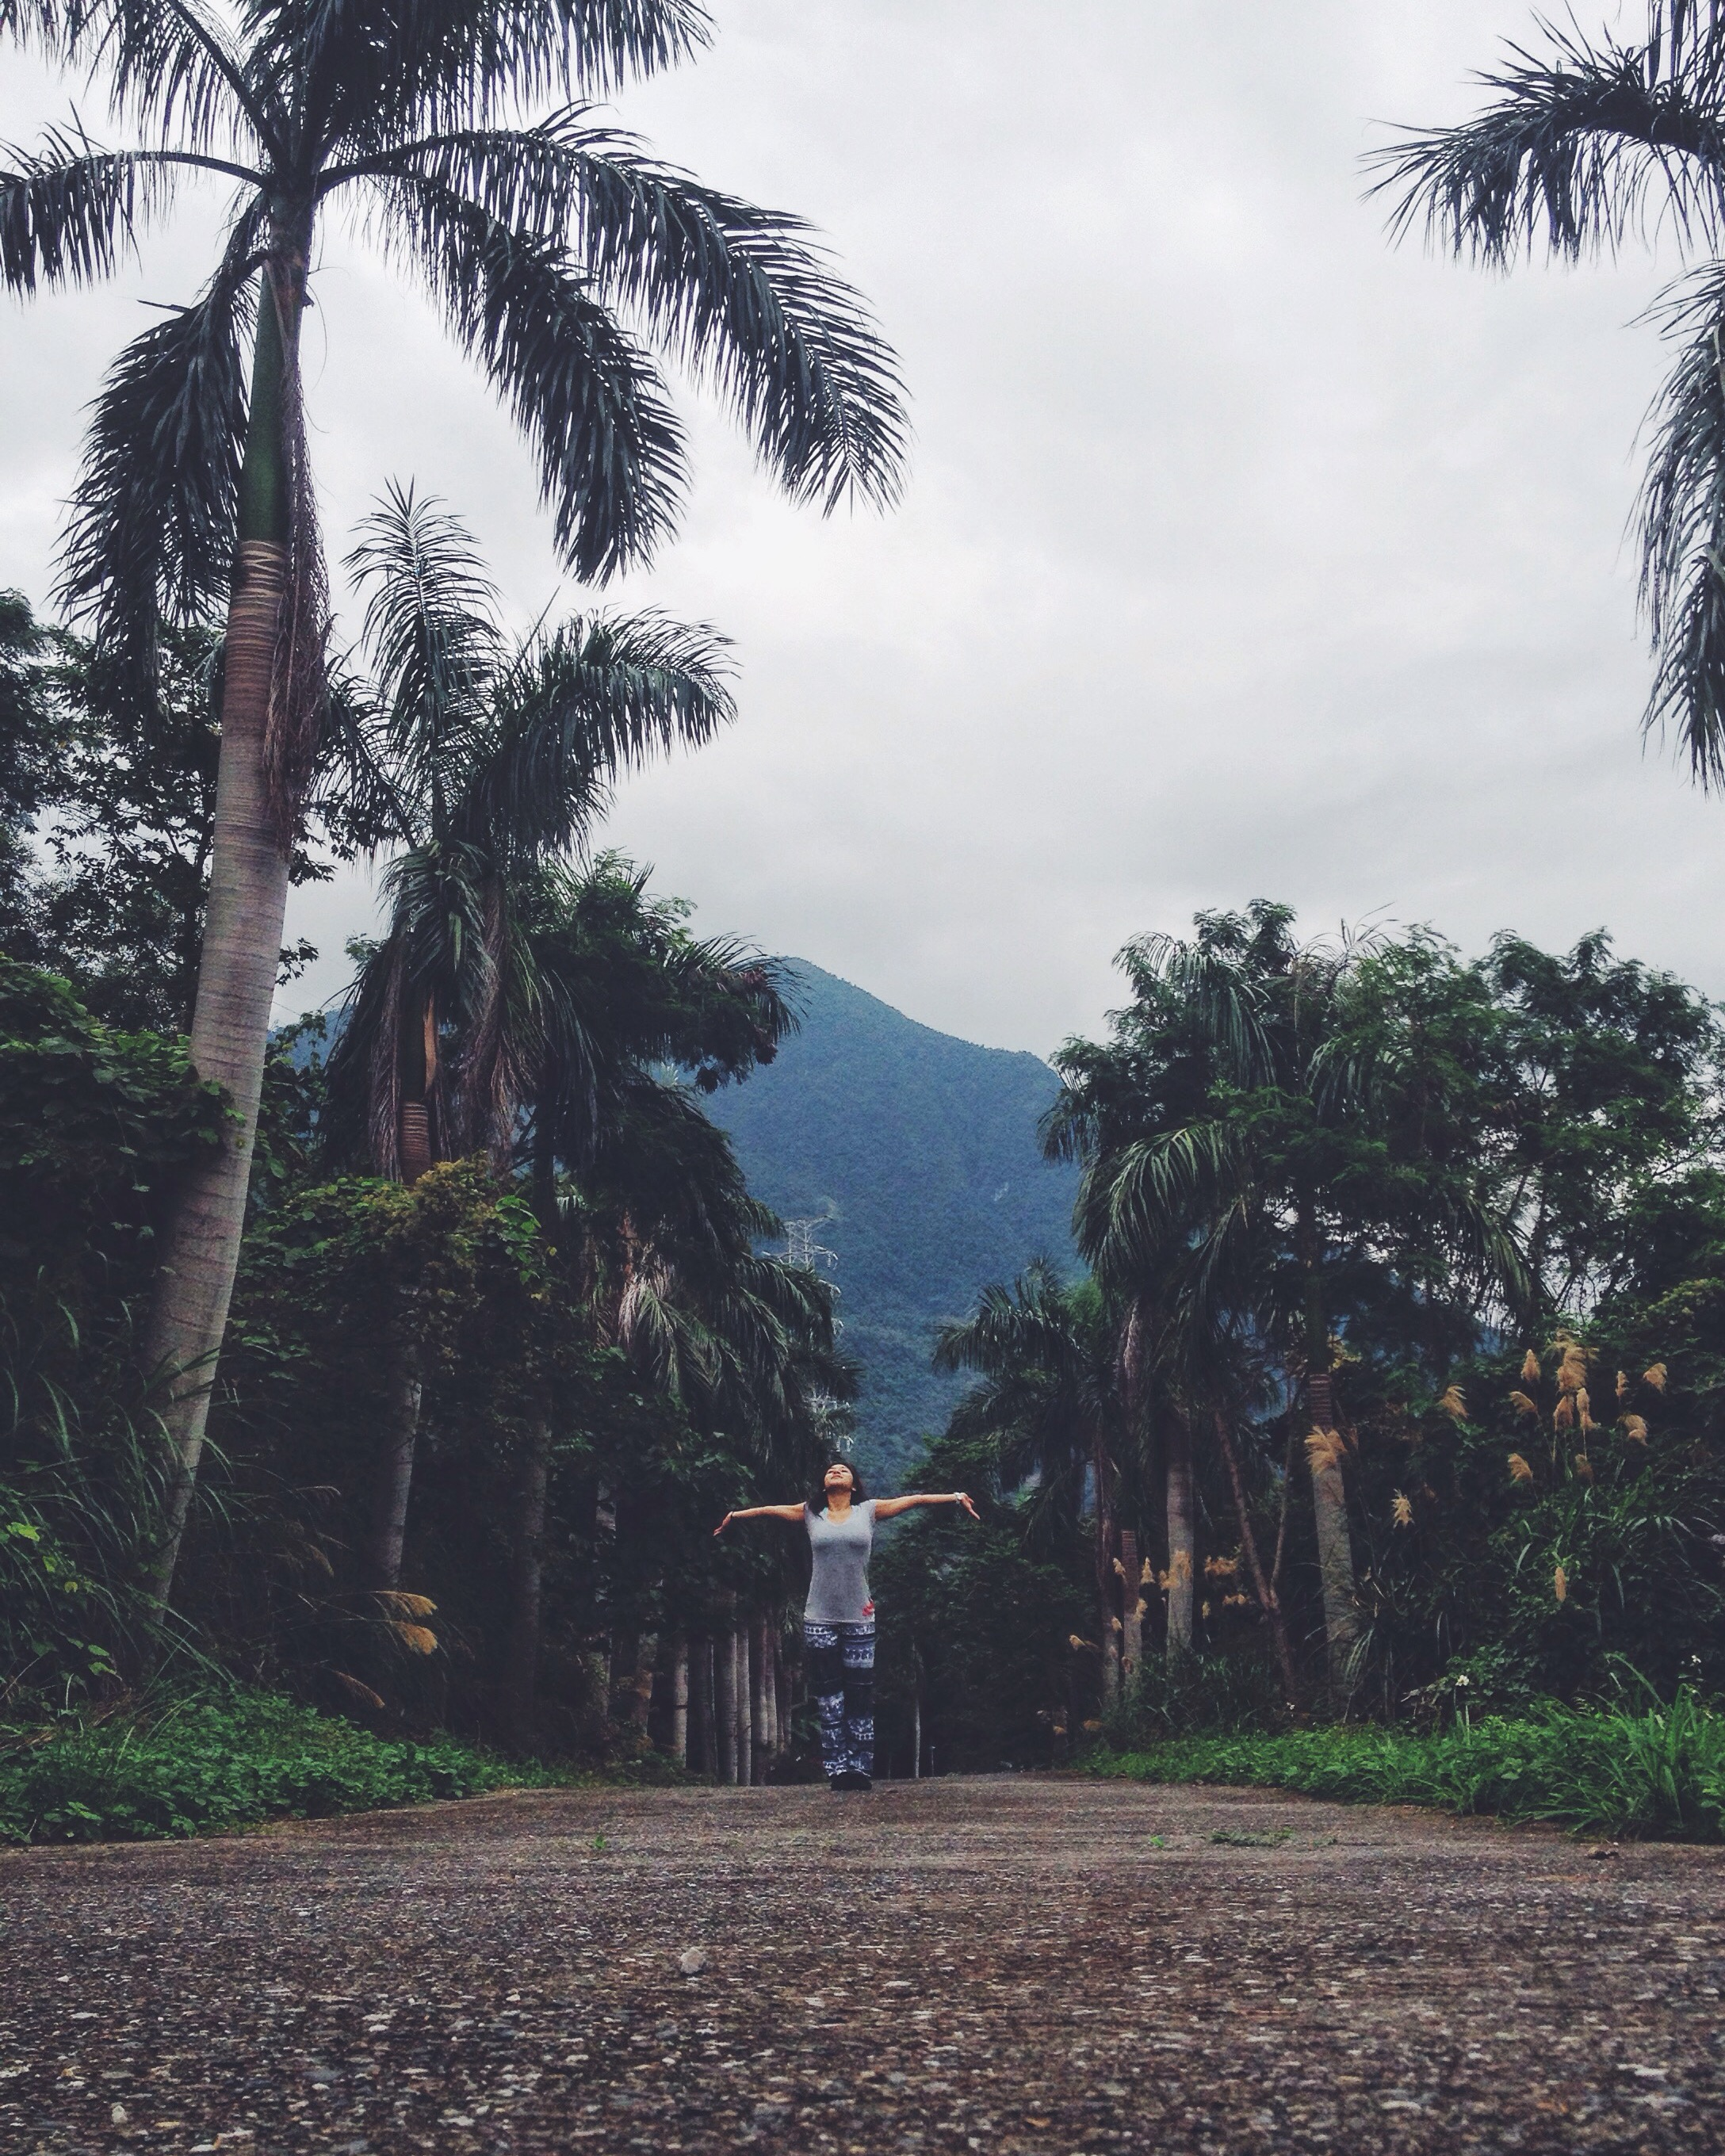 What I Learned From My First Solo Travel Experience